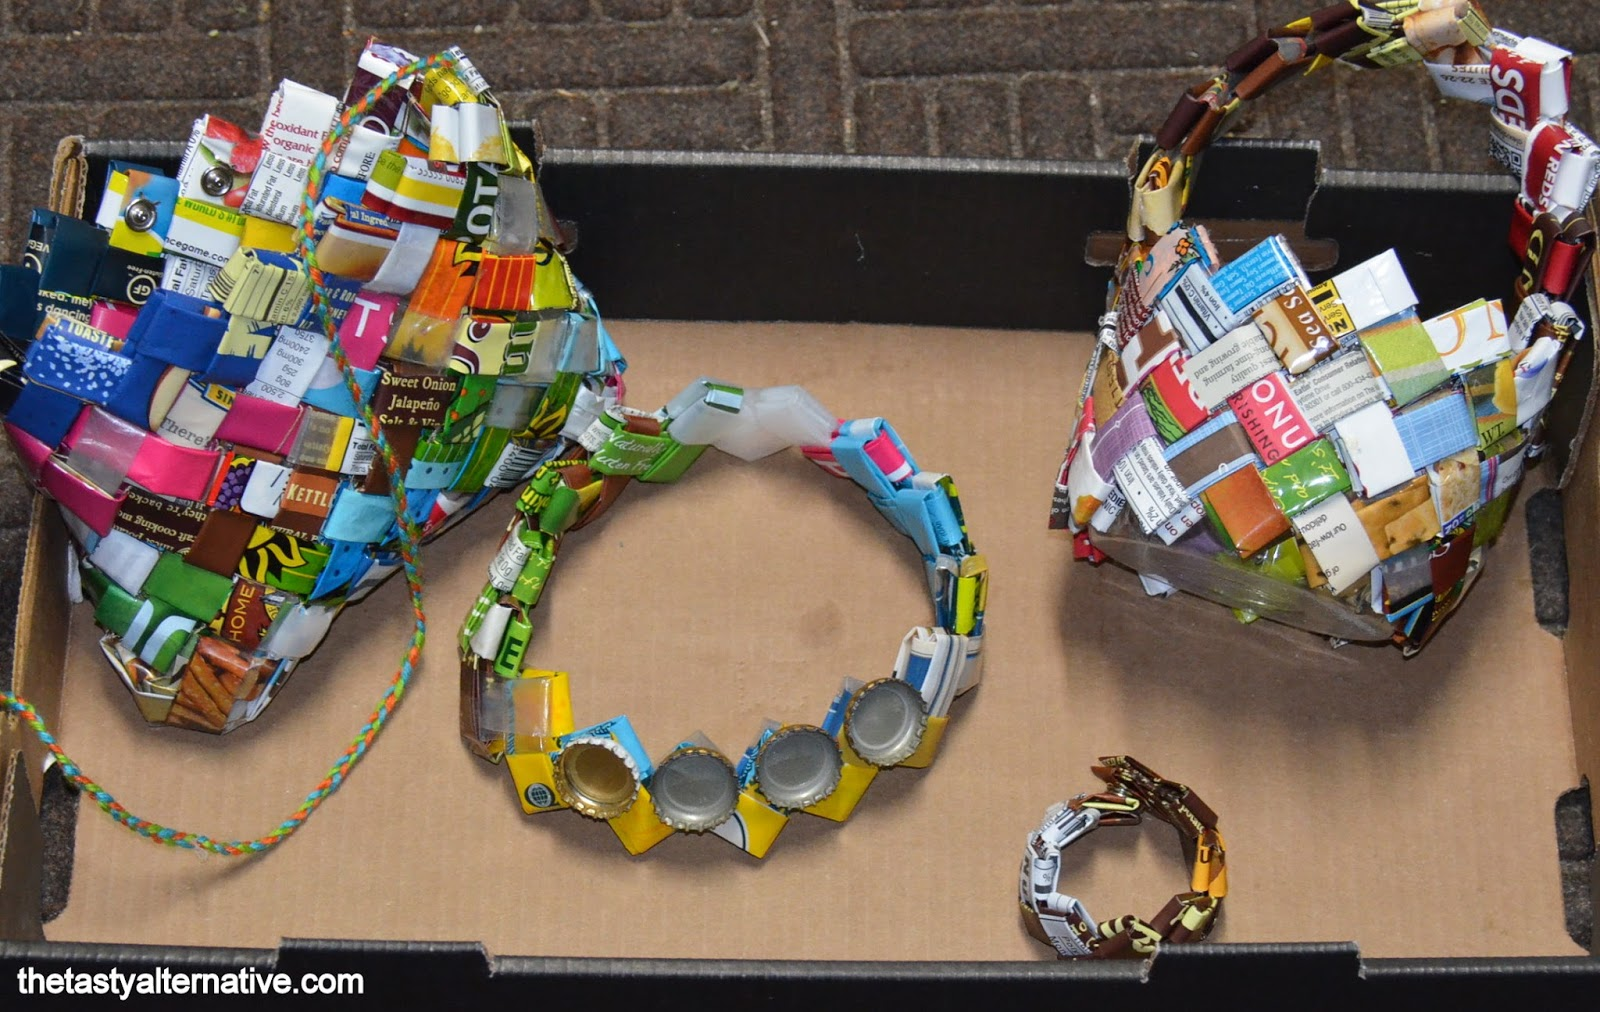 Waste material activity easy arts and crafts ideas for Craft ideas using waste materials